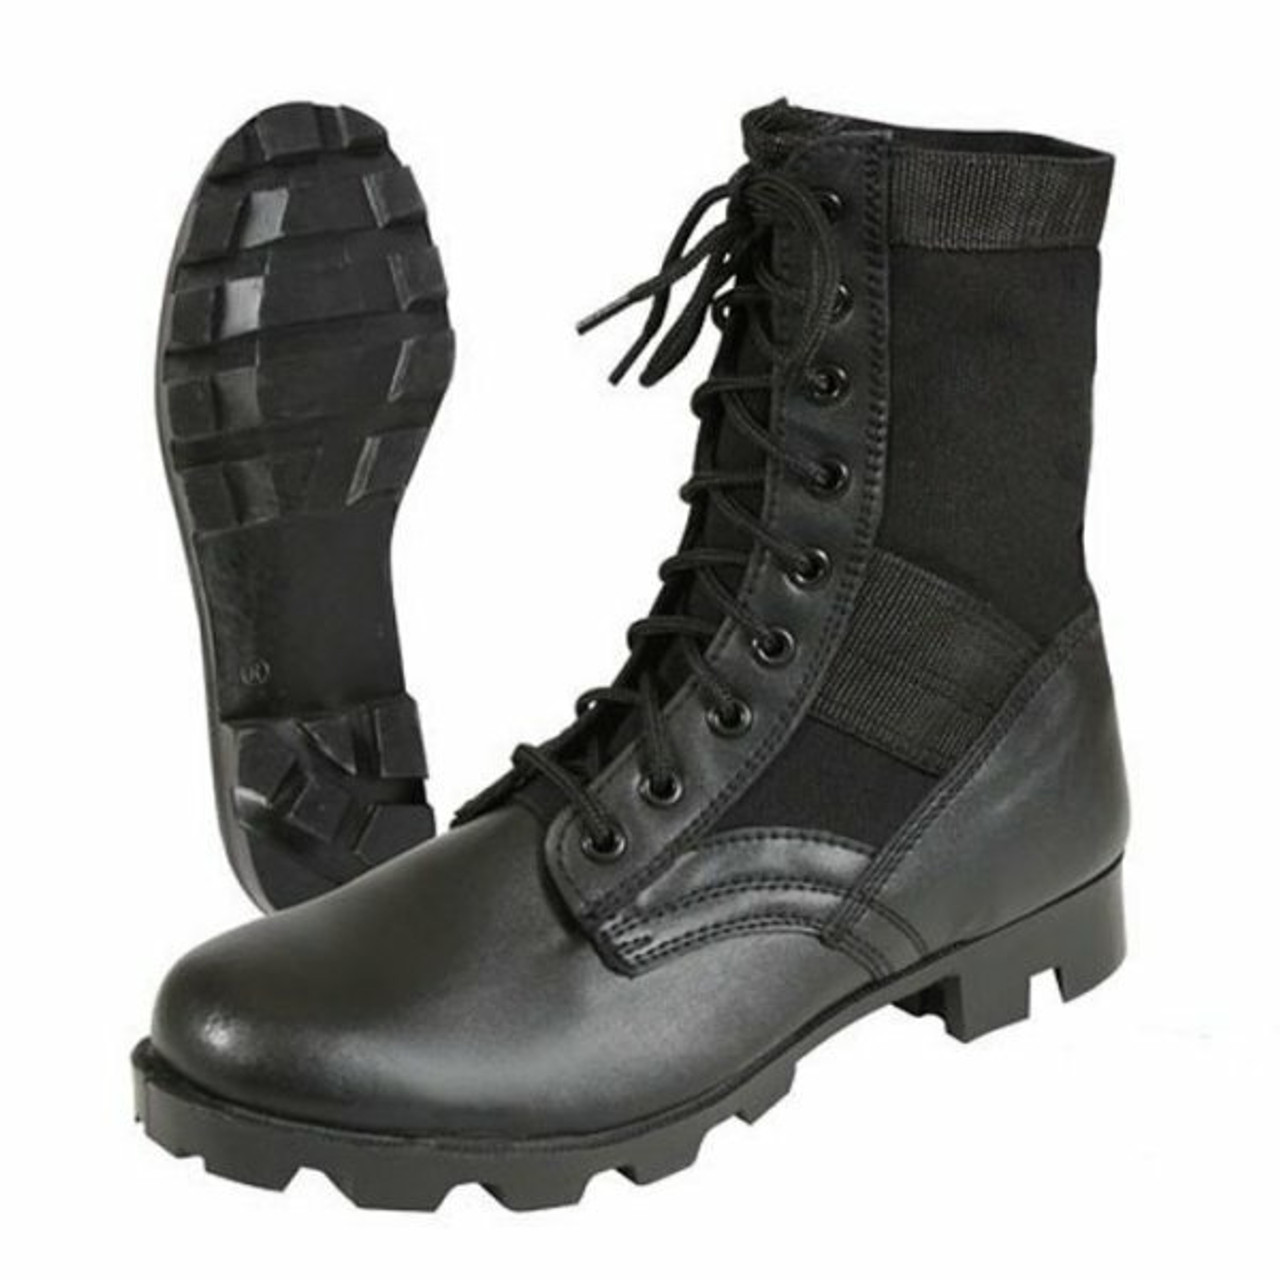 US GI Military style Black Jungle Combat Boots new US MADE {12W}